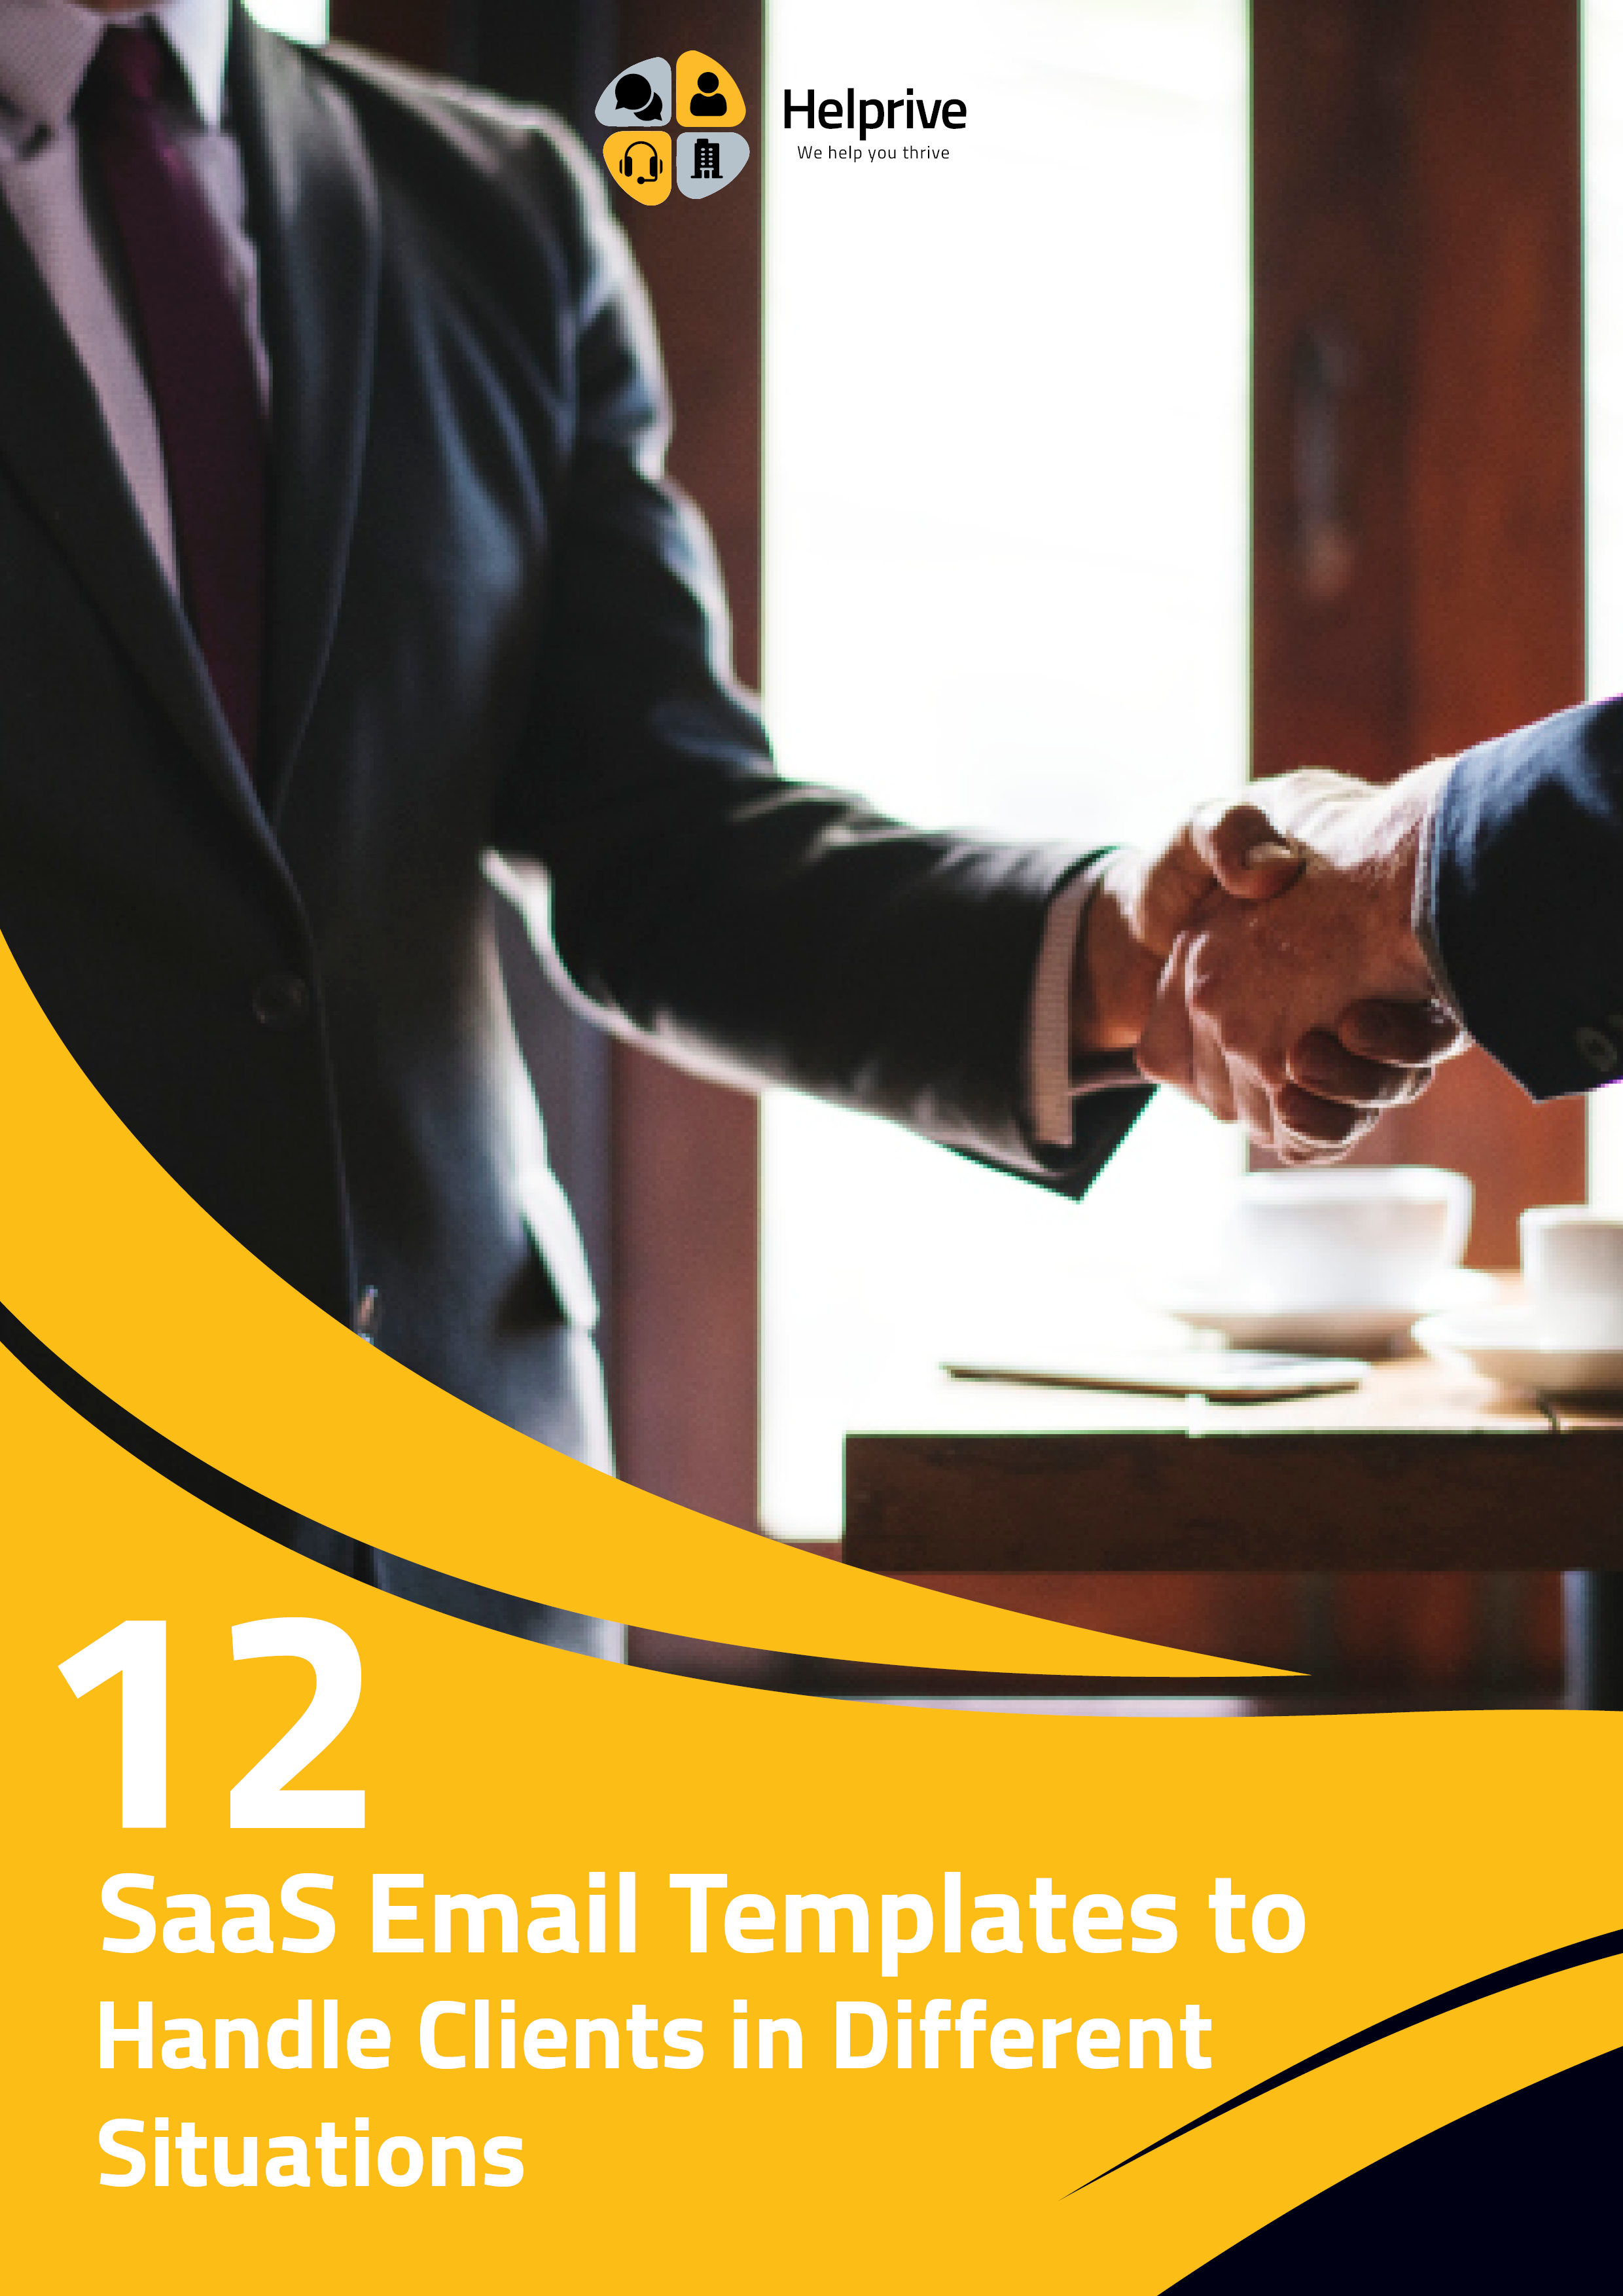 12 copy & paste SaaS customer service email templates